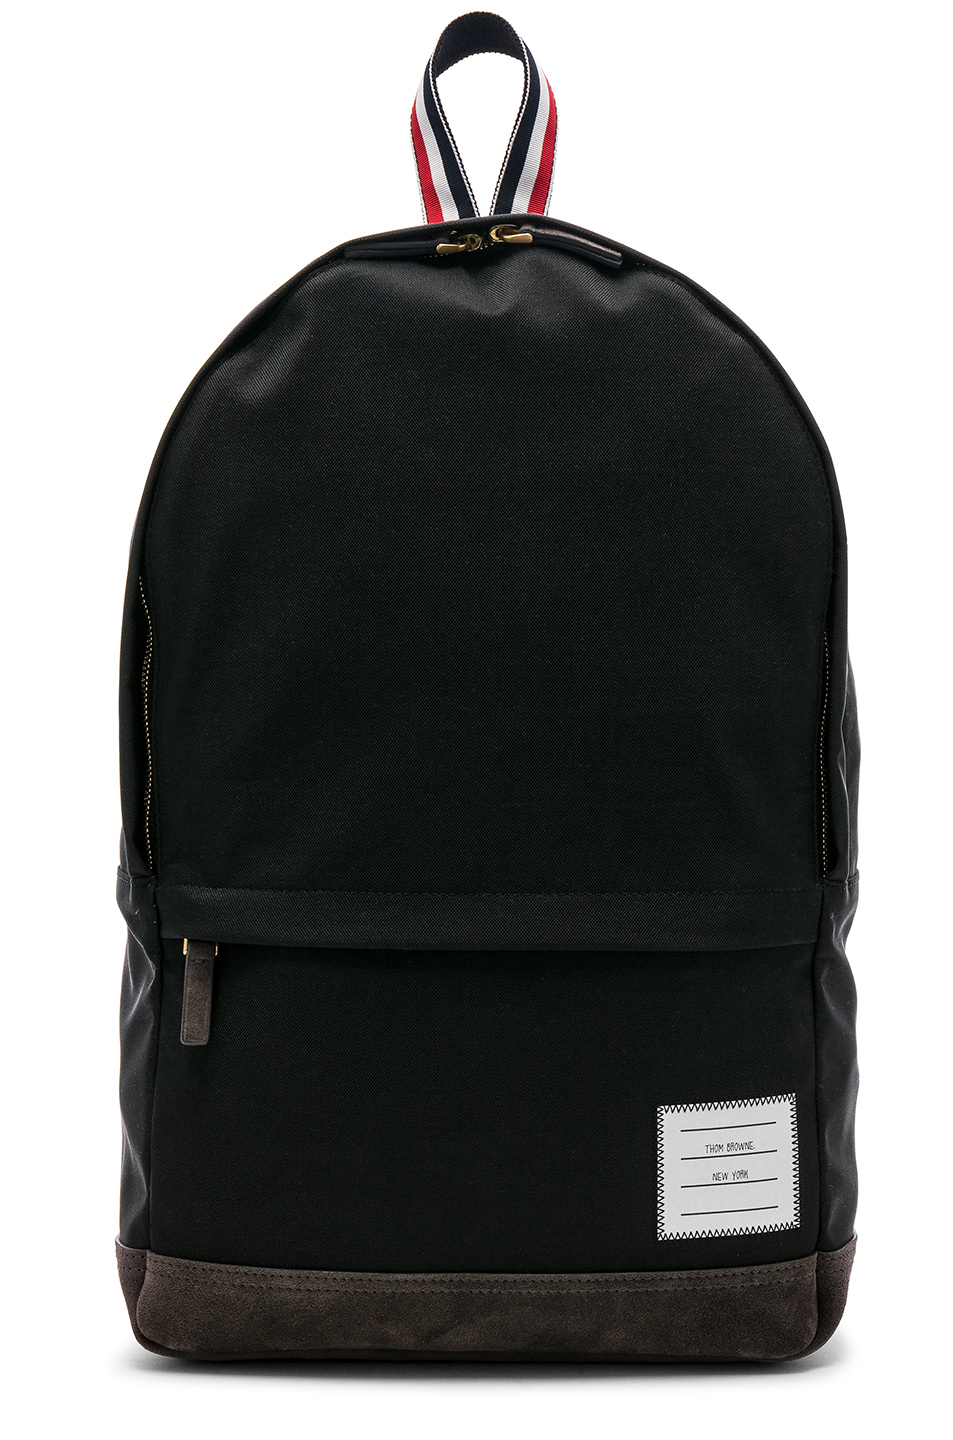 6a51b5a4ed Jual Thom Browne Nylon Tech Unstructured Backpack - 100% Original ...